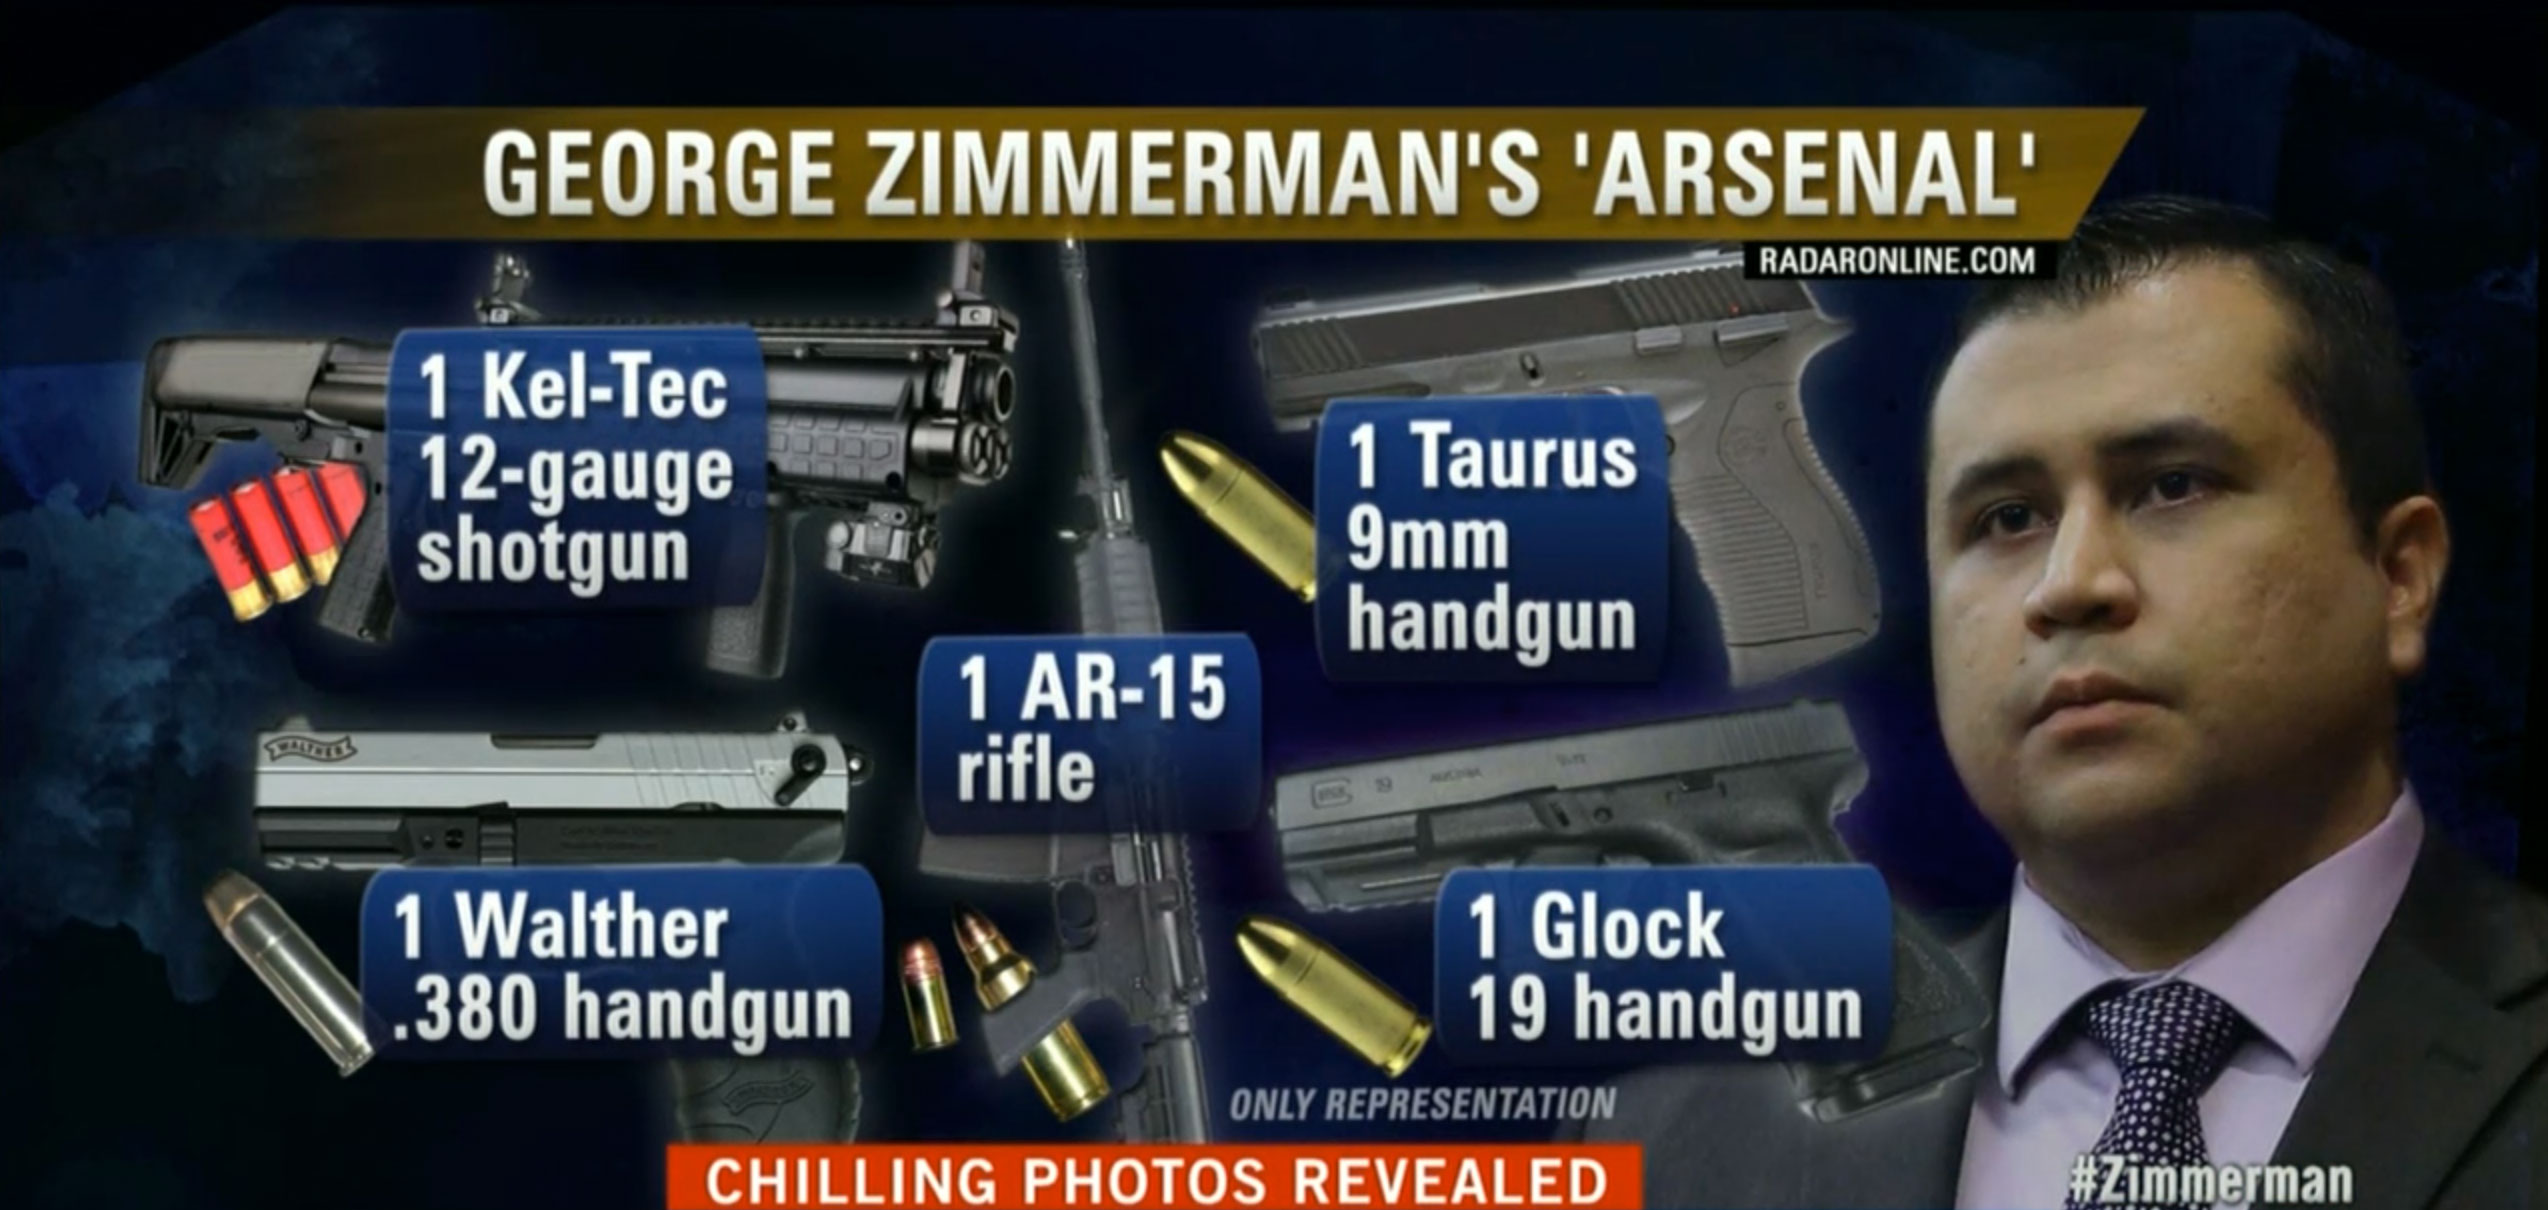 George-Zimmerman-Weapons-Gun-Arsenal